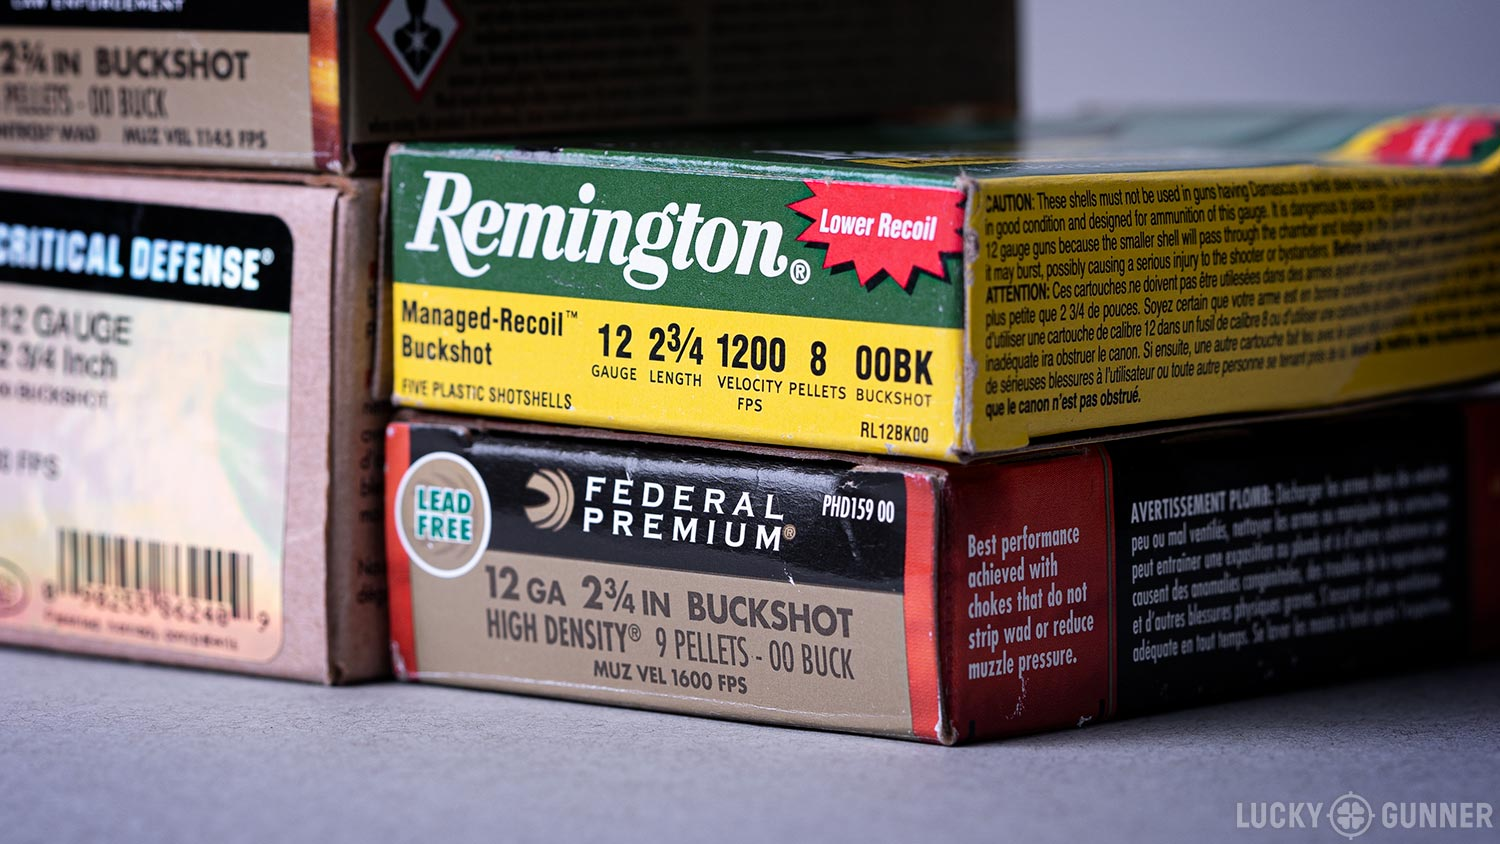 Remington 00 Buckshot box